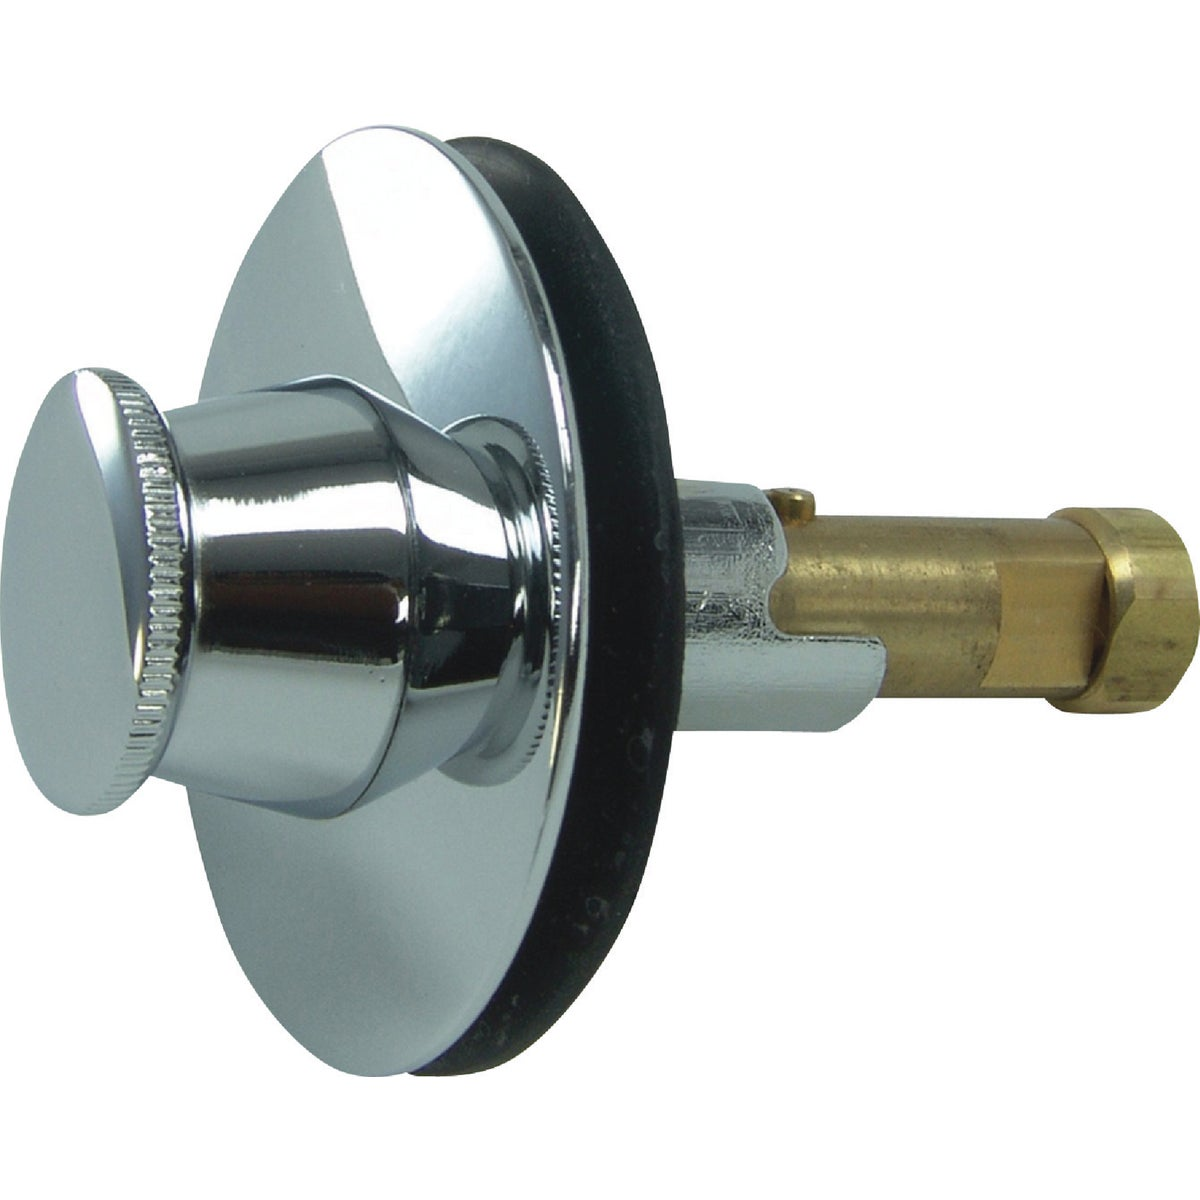 CHROME TUB STOPPER - 88599 by Danco Perfect Match